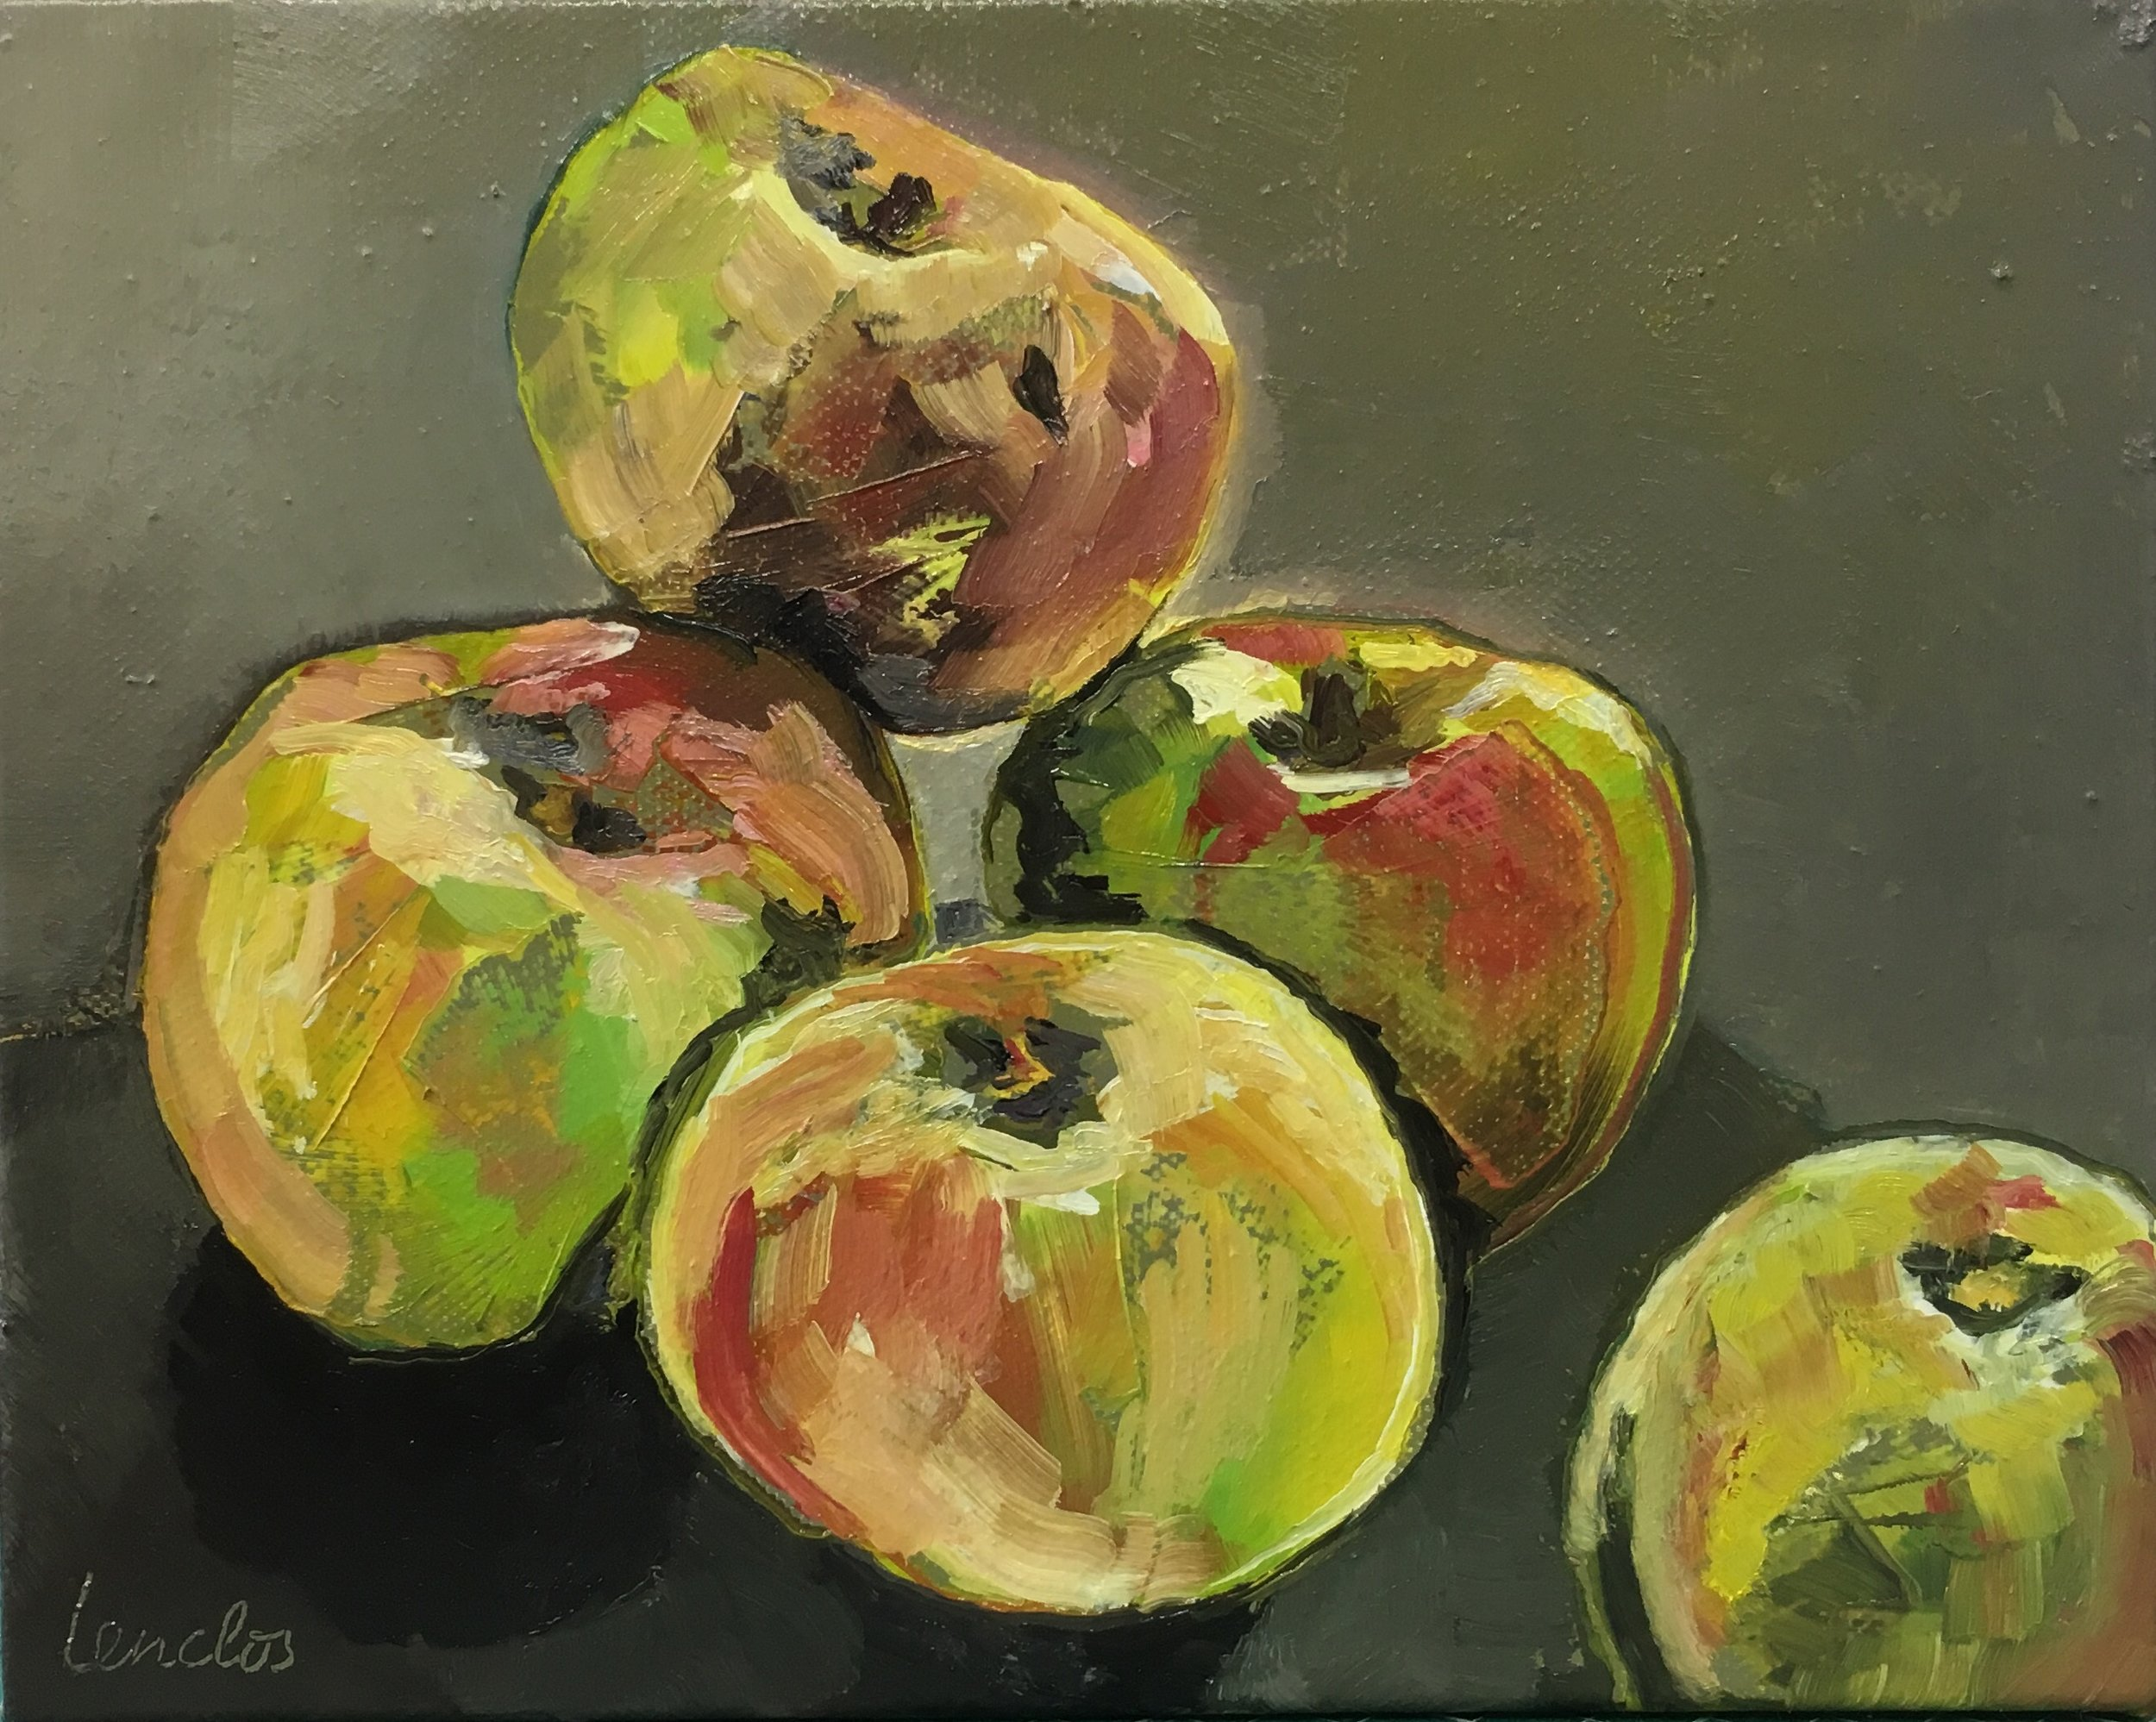 Lina's apples